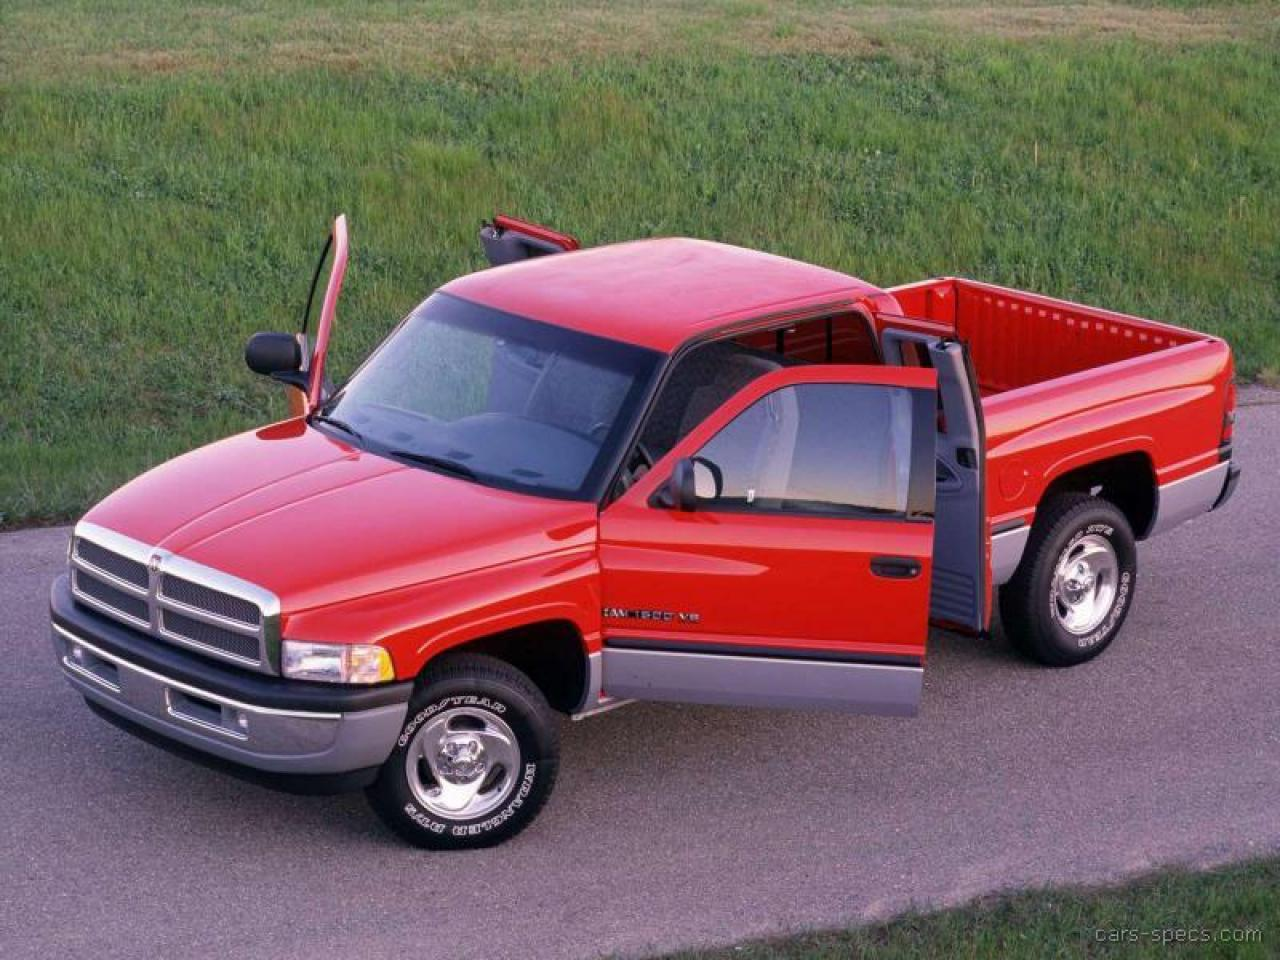 2001 Dodge Ram Pickup 3500 Information And Photos Zombiedrive Extended Cab 10 800 1024 1280 1600 Origin